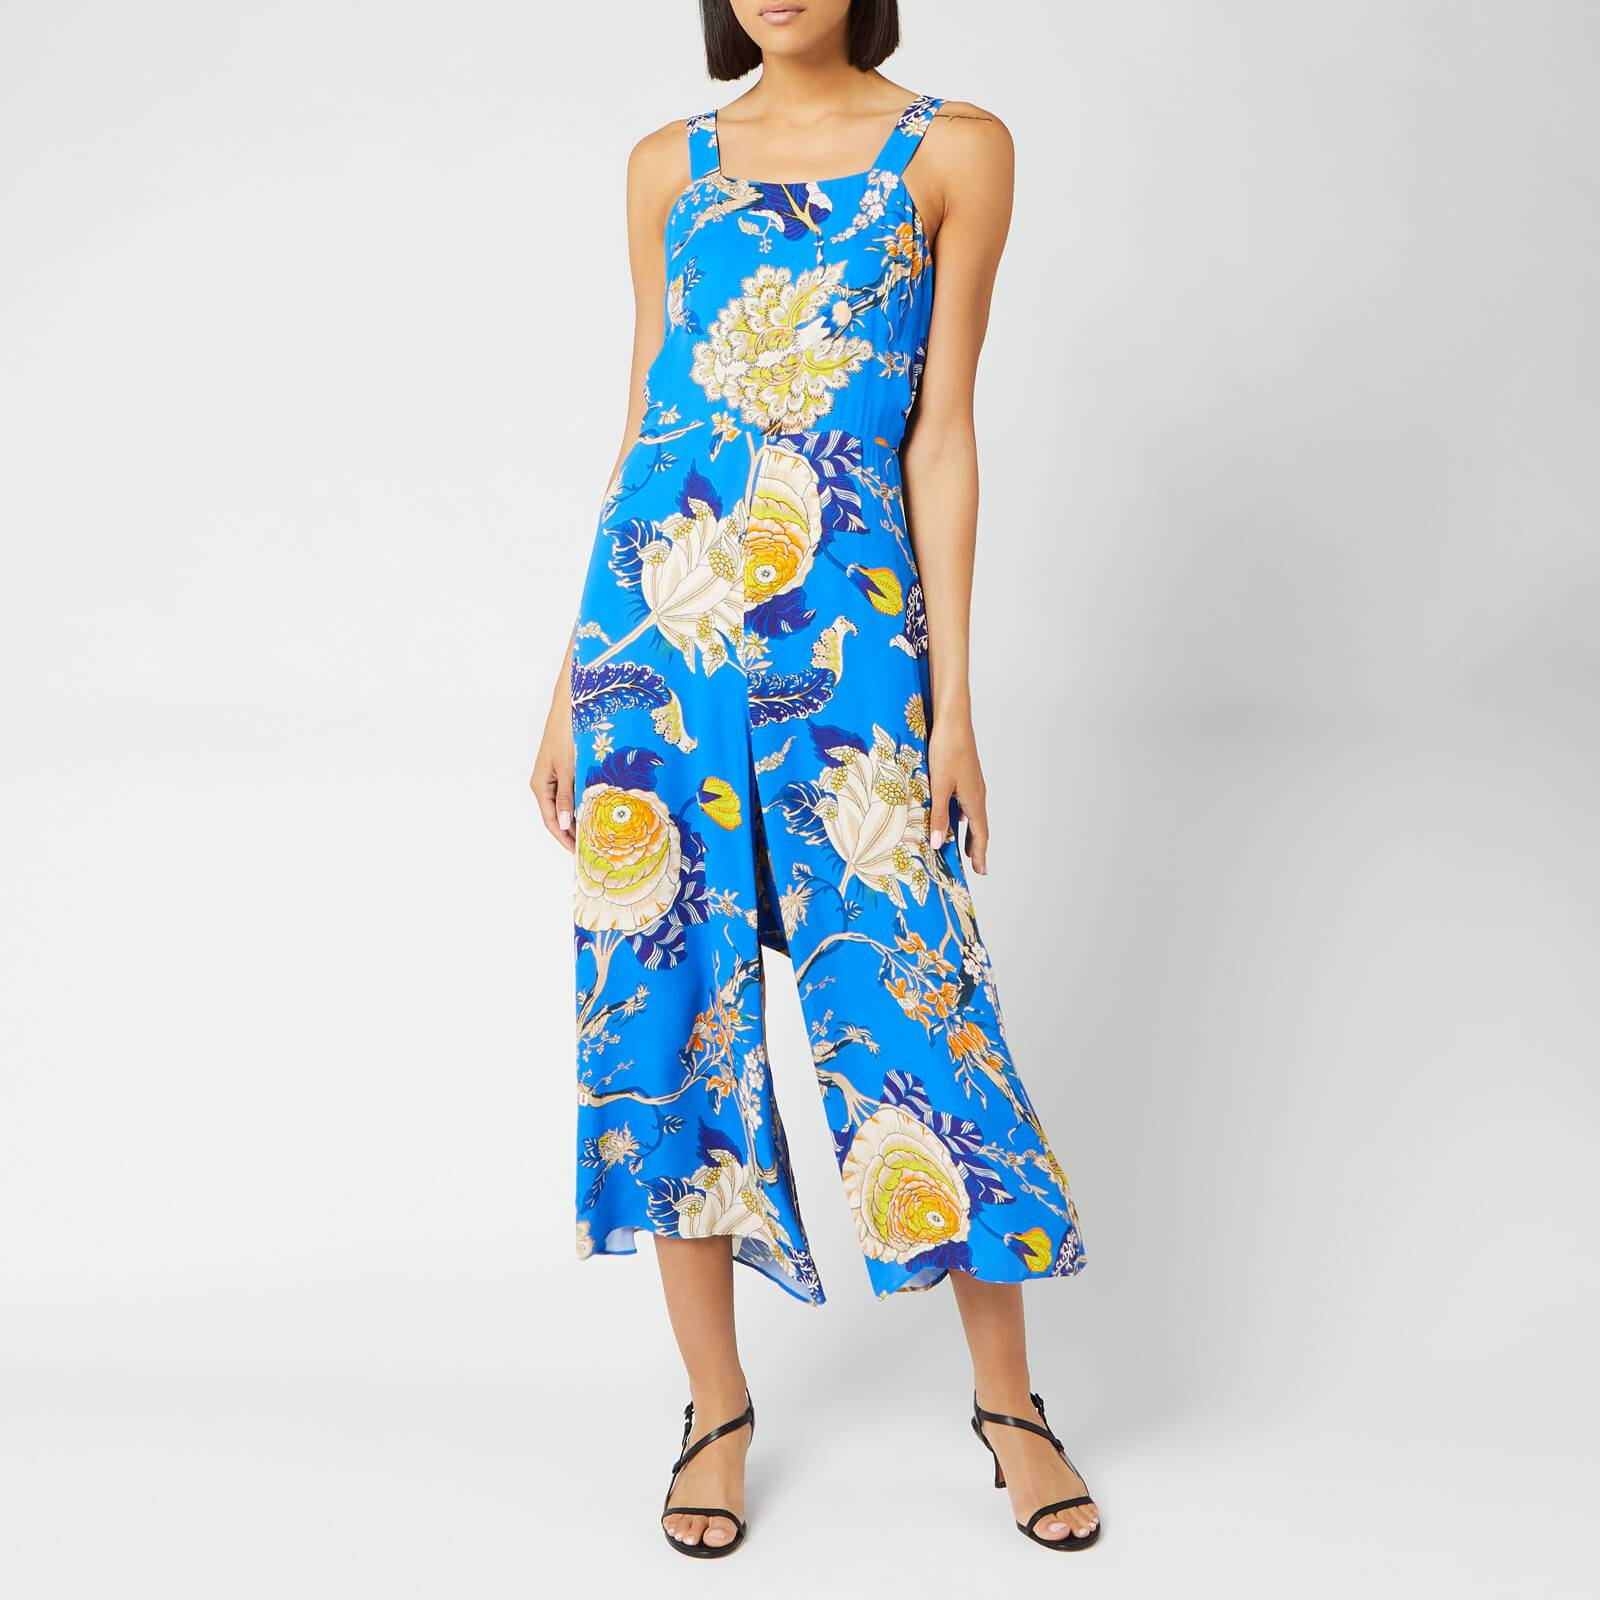 Whistles Women's Exotic Floral Strappy Jumpsuit - Blue/Multi - UK 10 - Blue